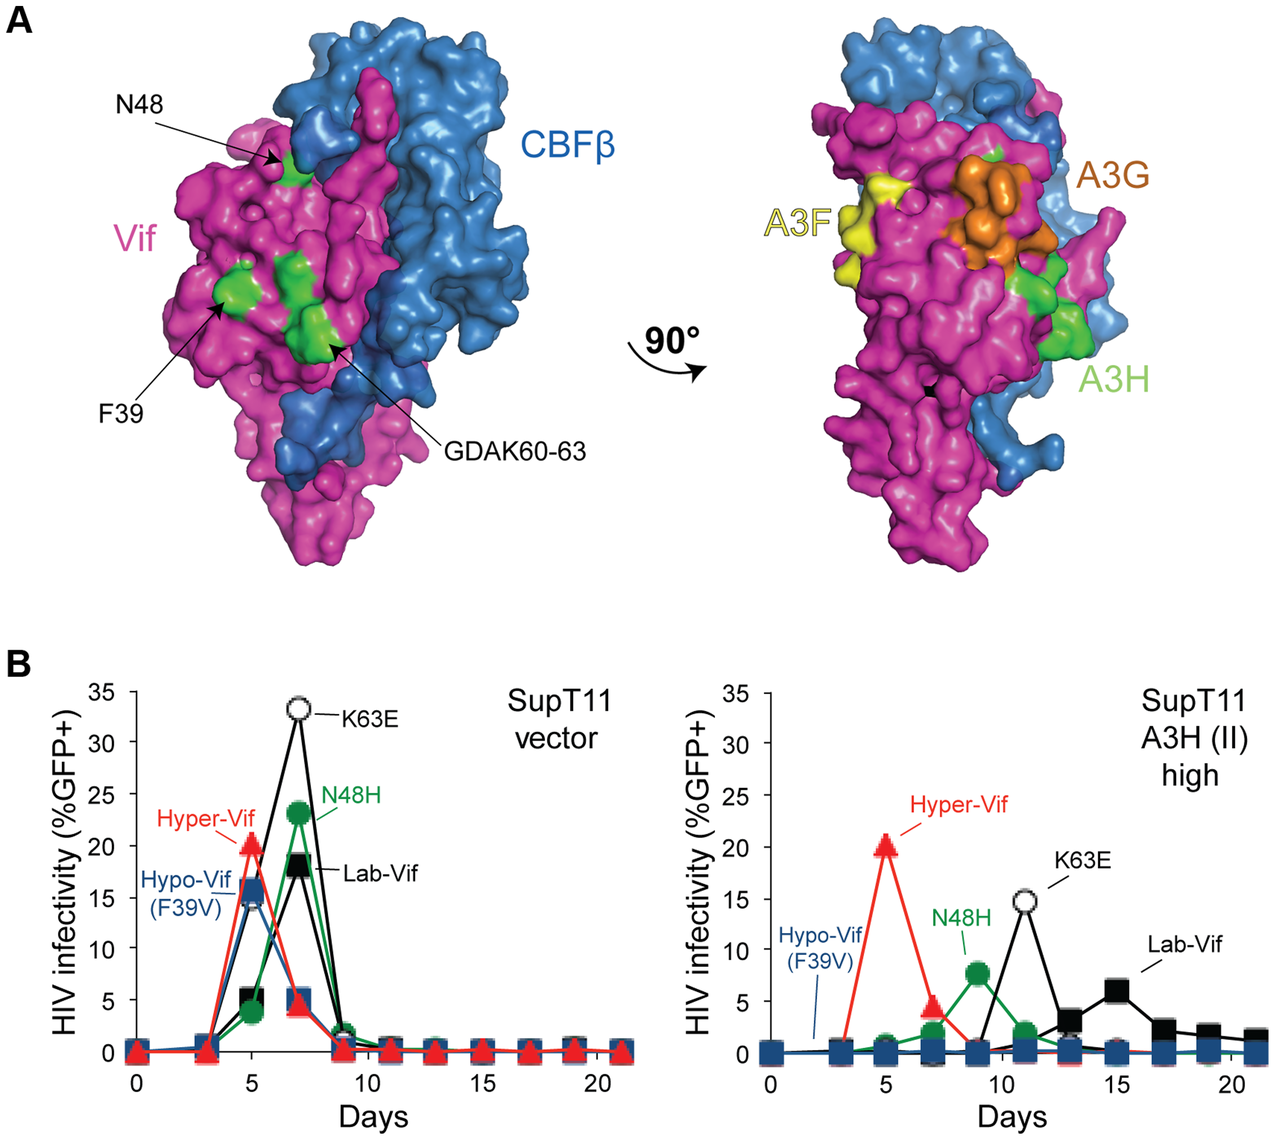 Vif separation-of-function substitutions define the likely APOBEC3H interaction surface.